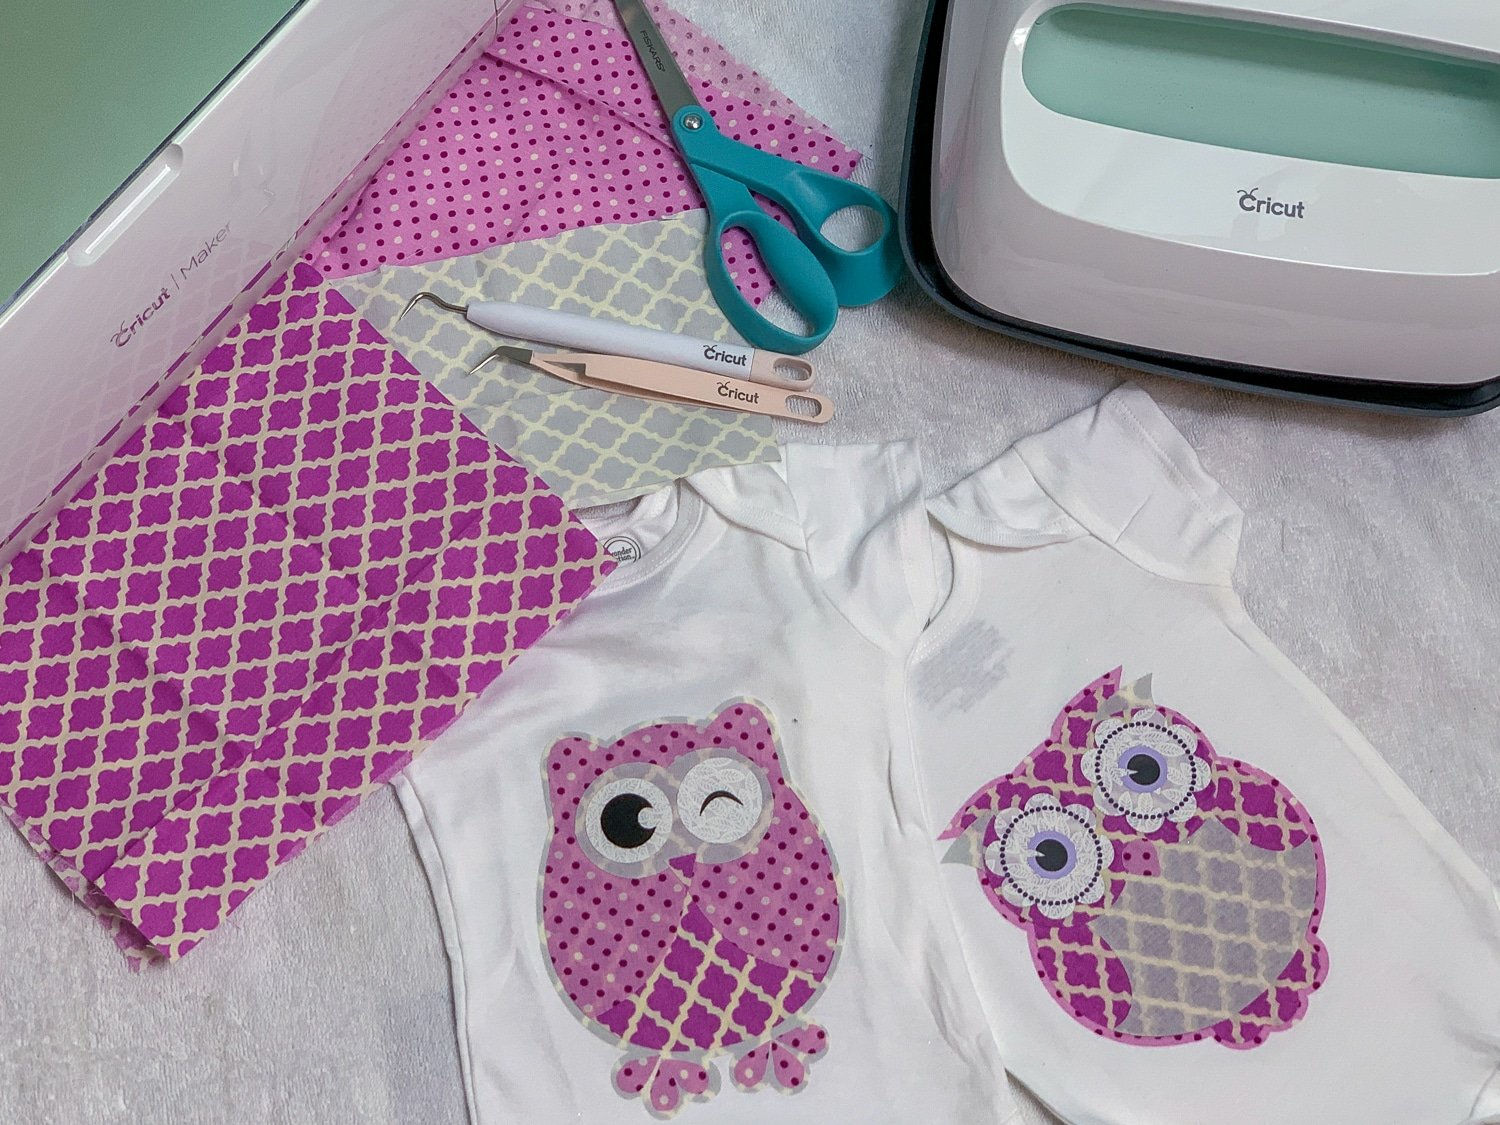 My niece is having a baby soon so I wanted to try and make some super cute owl appliques with my @officialcricut EasyPress 2 for when I start making things for her. #cricutmade #cricut #cricutmaker #fabriccrafts #babyshowerideas #craftideas